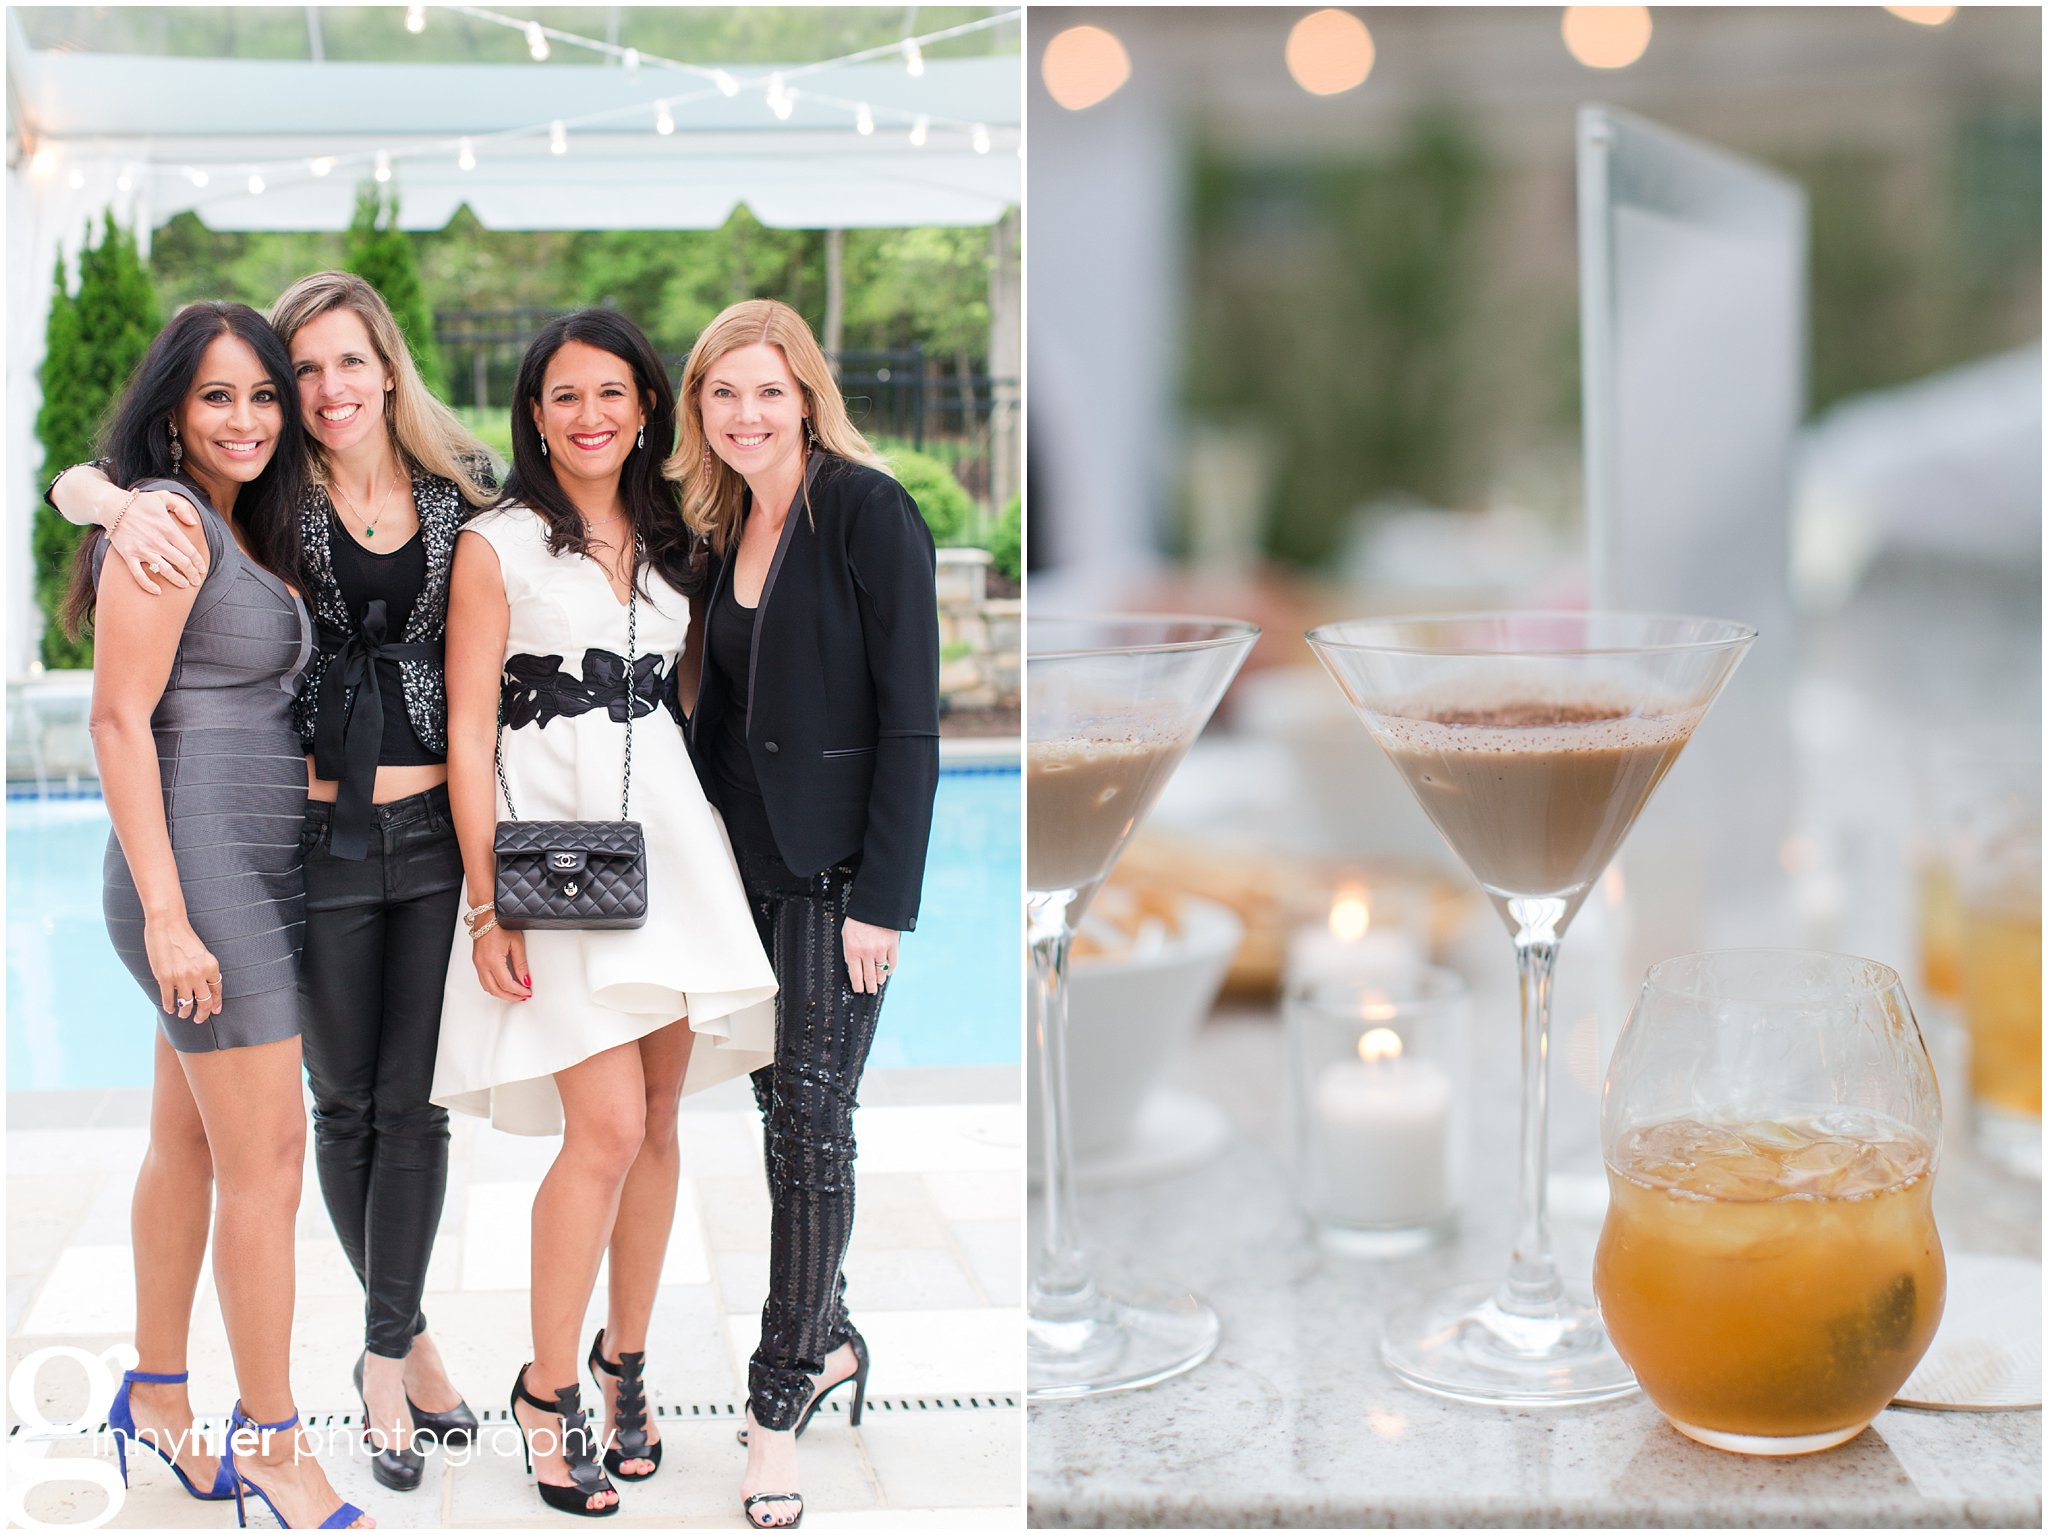 event_photography_party_0016.jpg